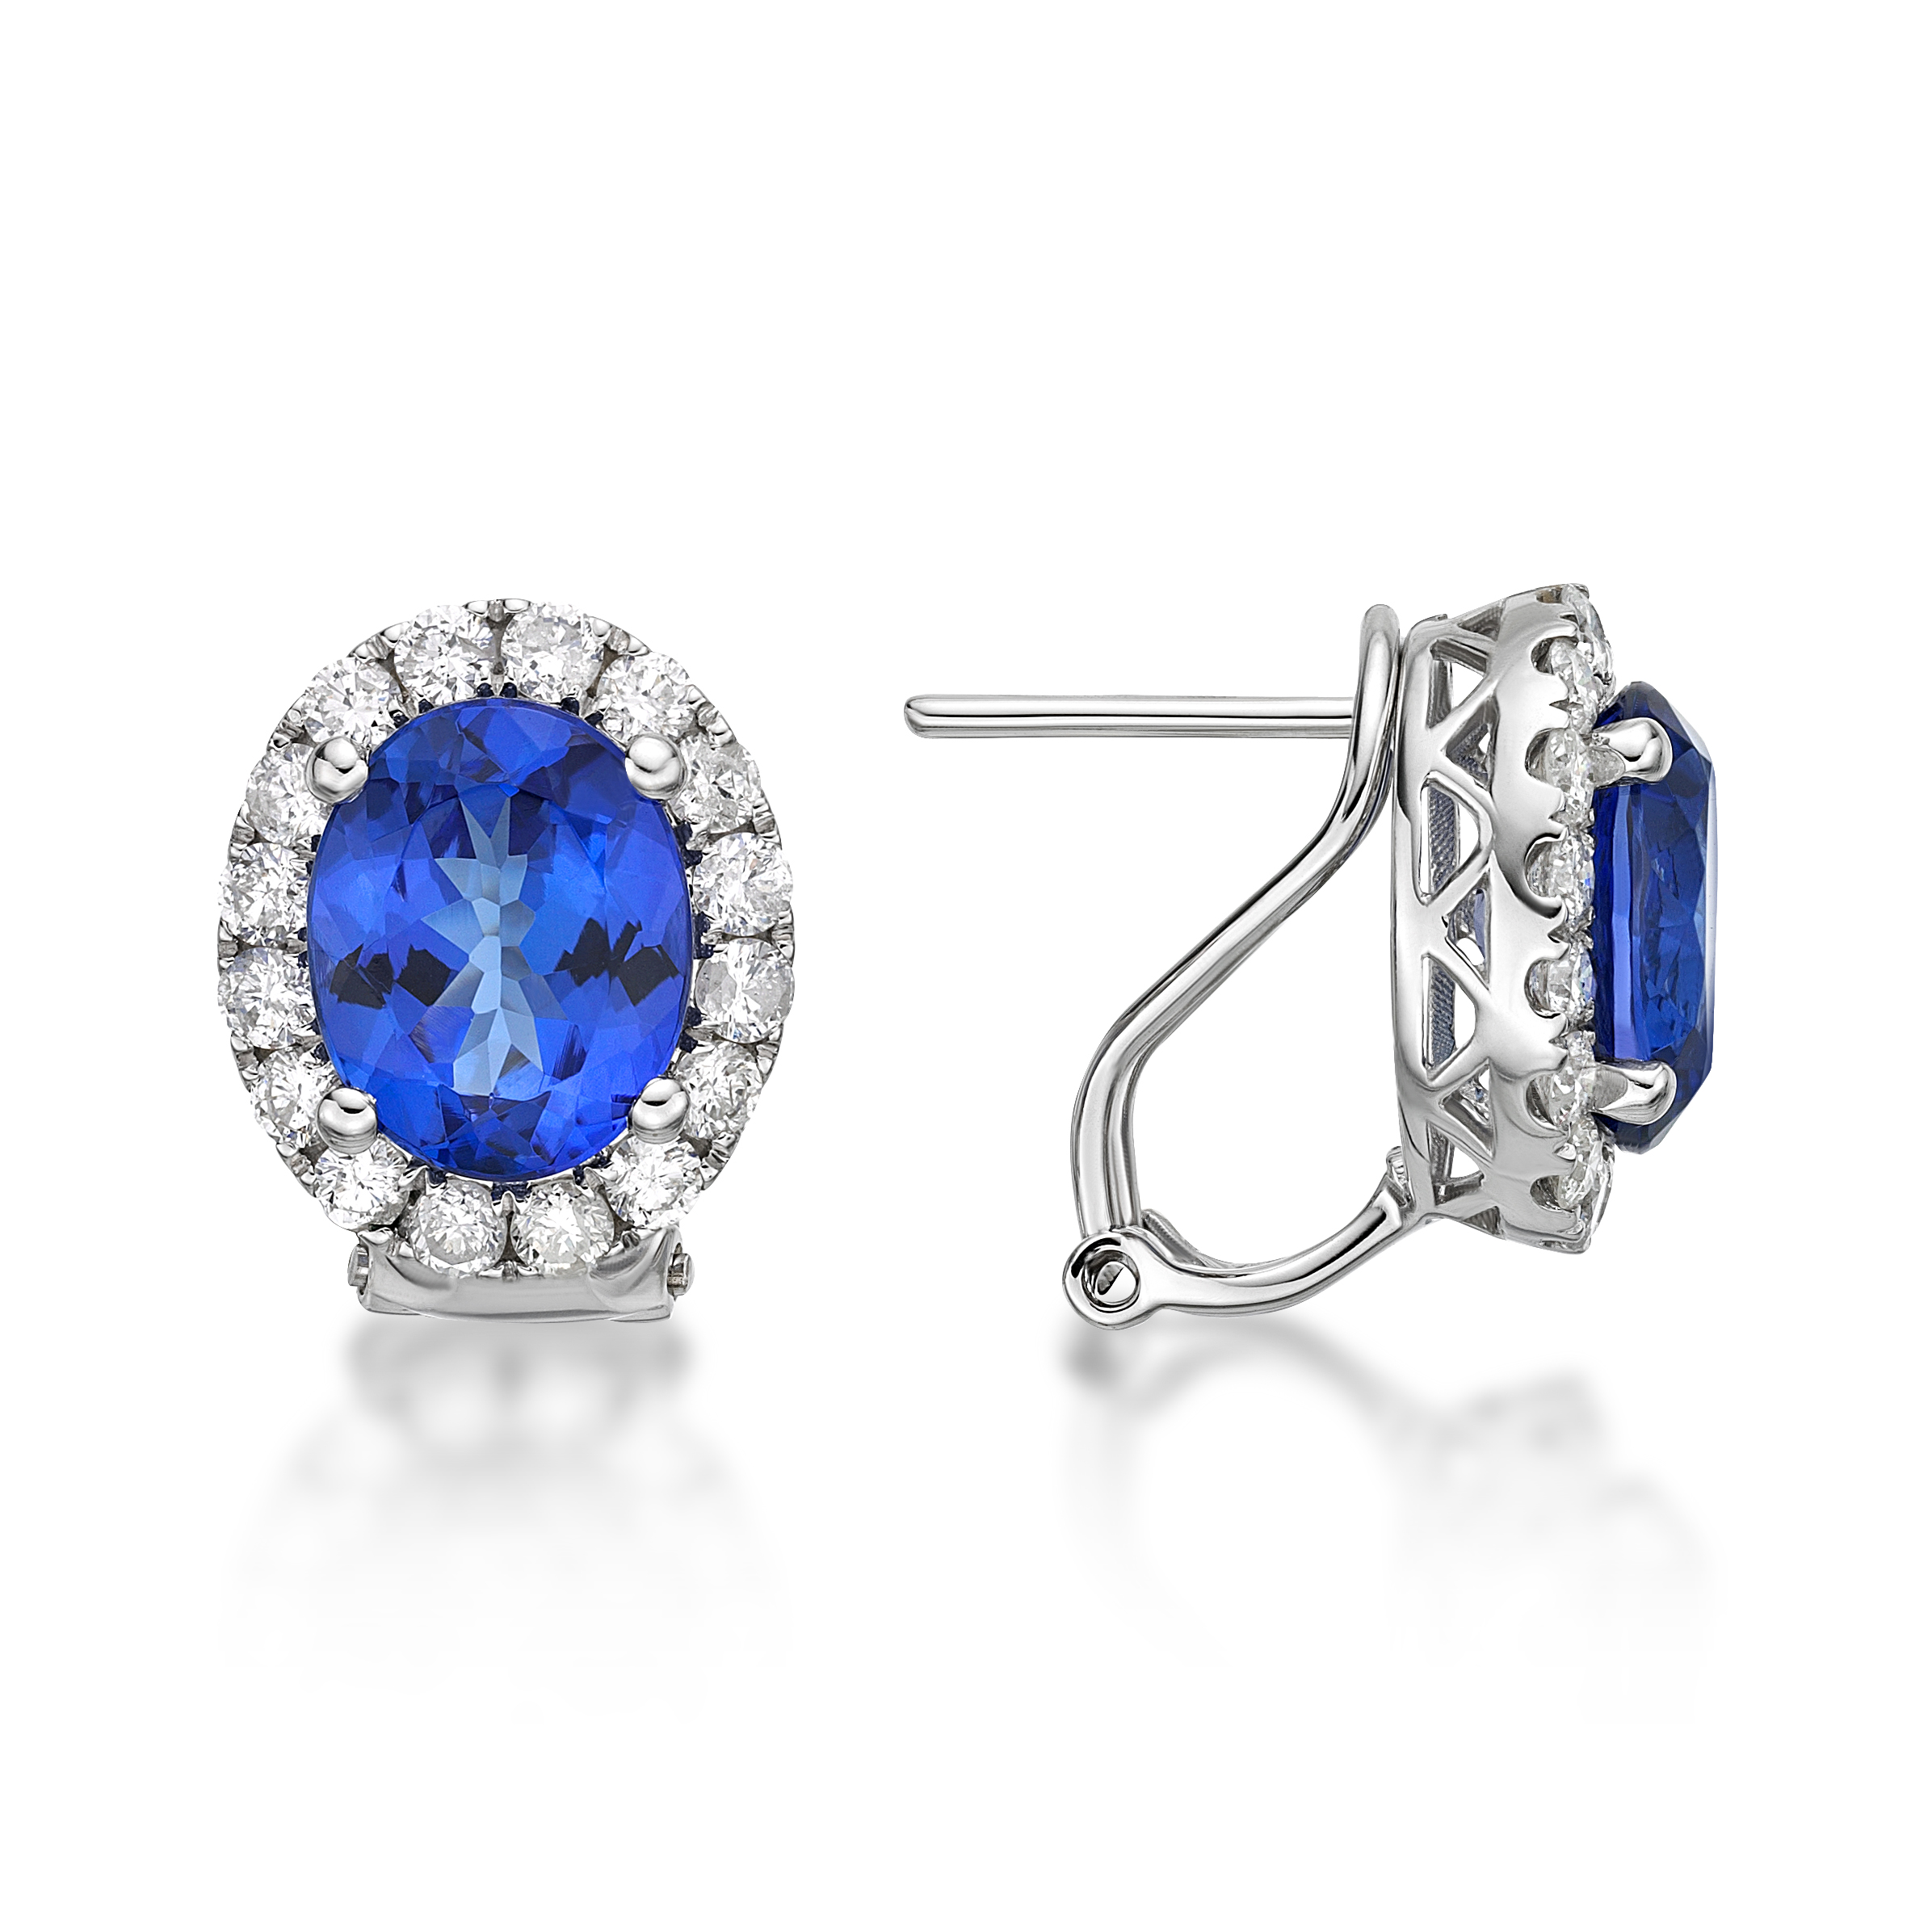 Get the Fancy of Colors on your Ears with Tanzanite Earrings